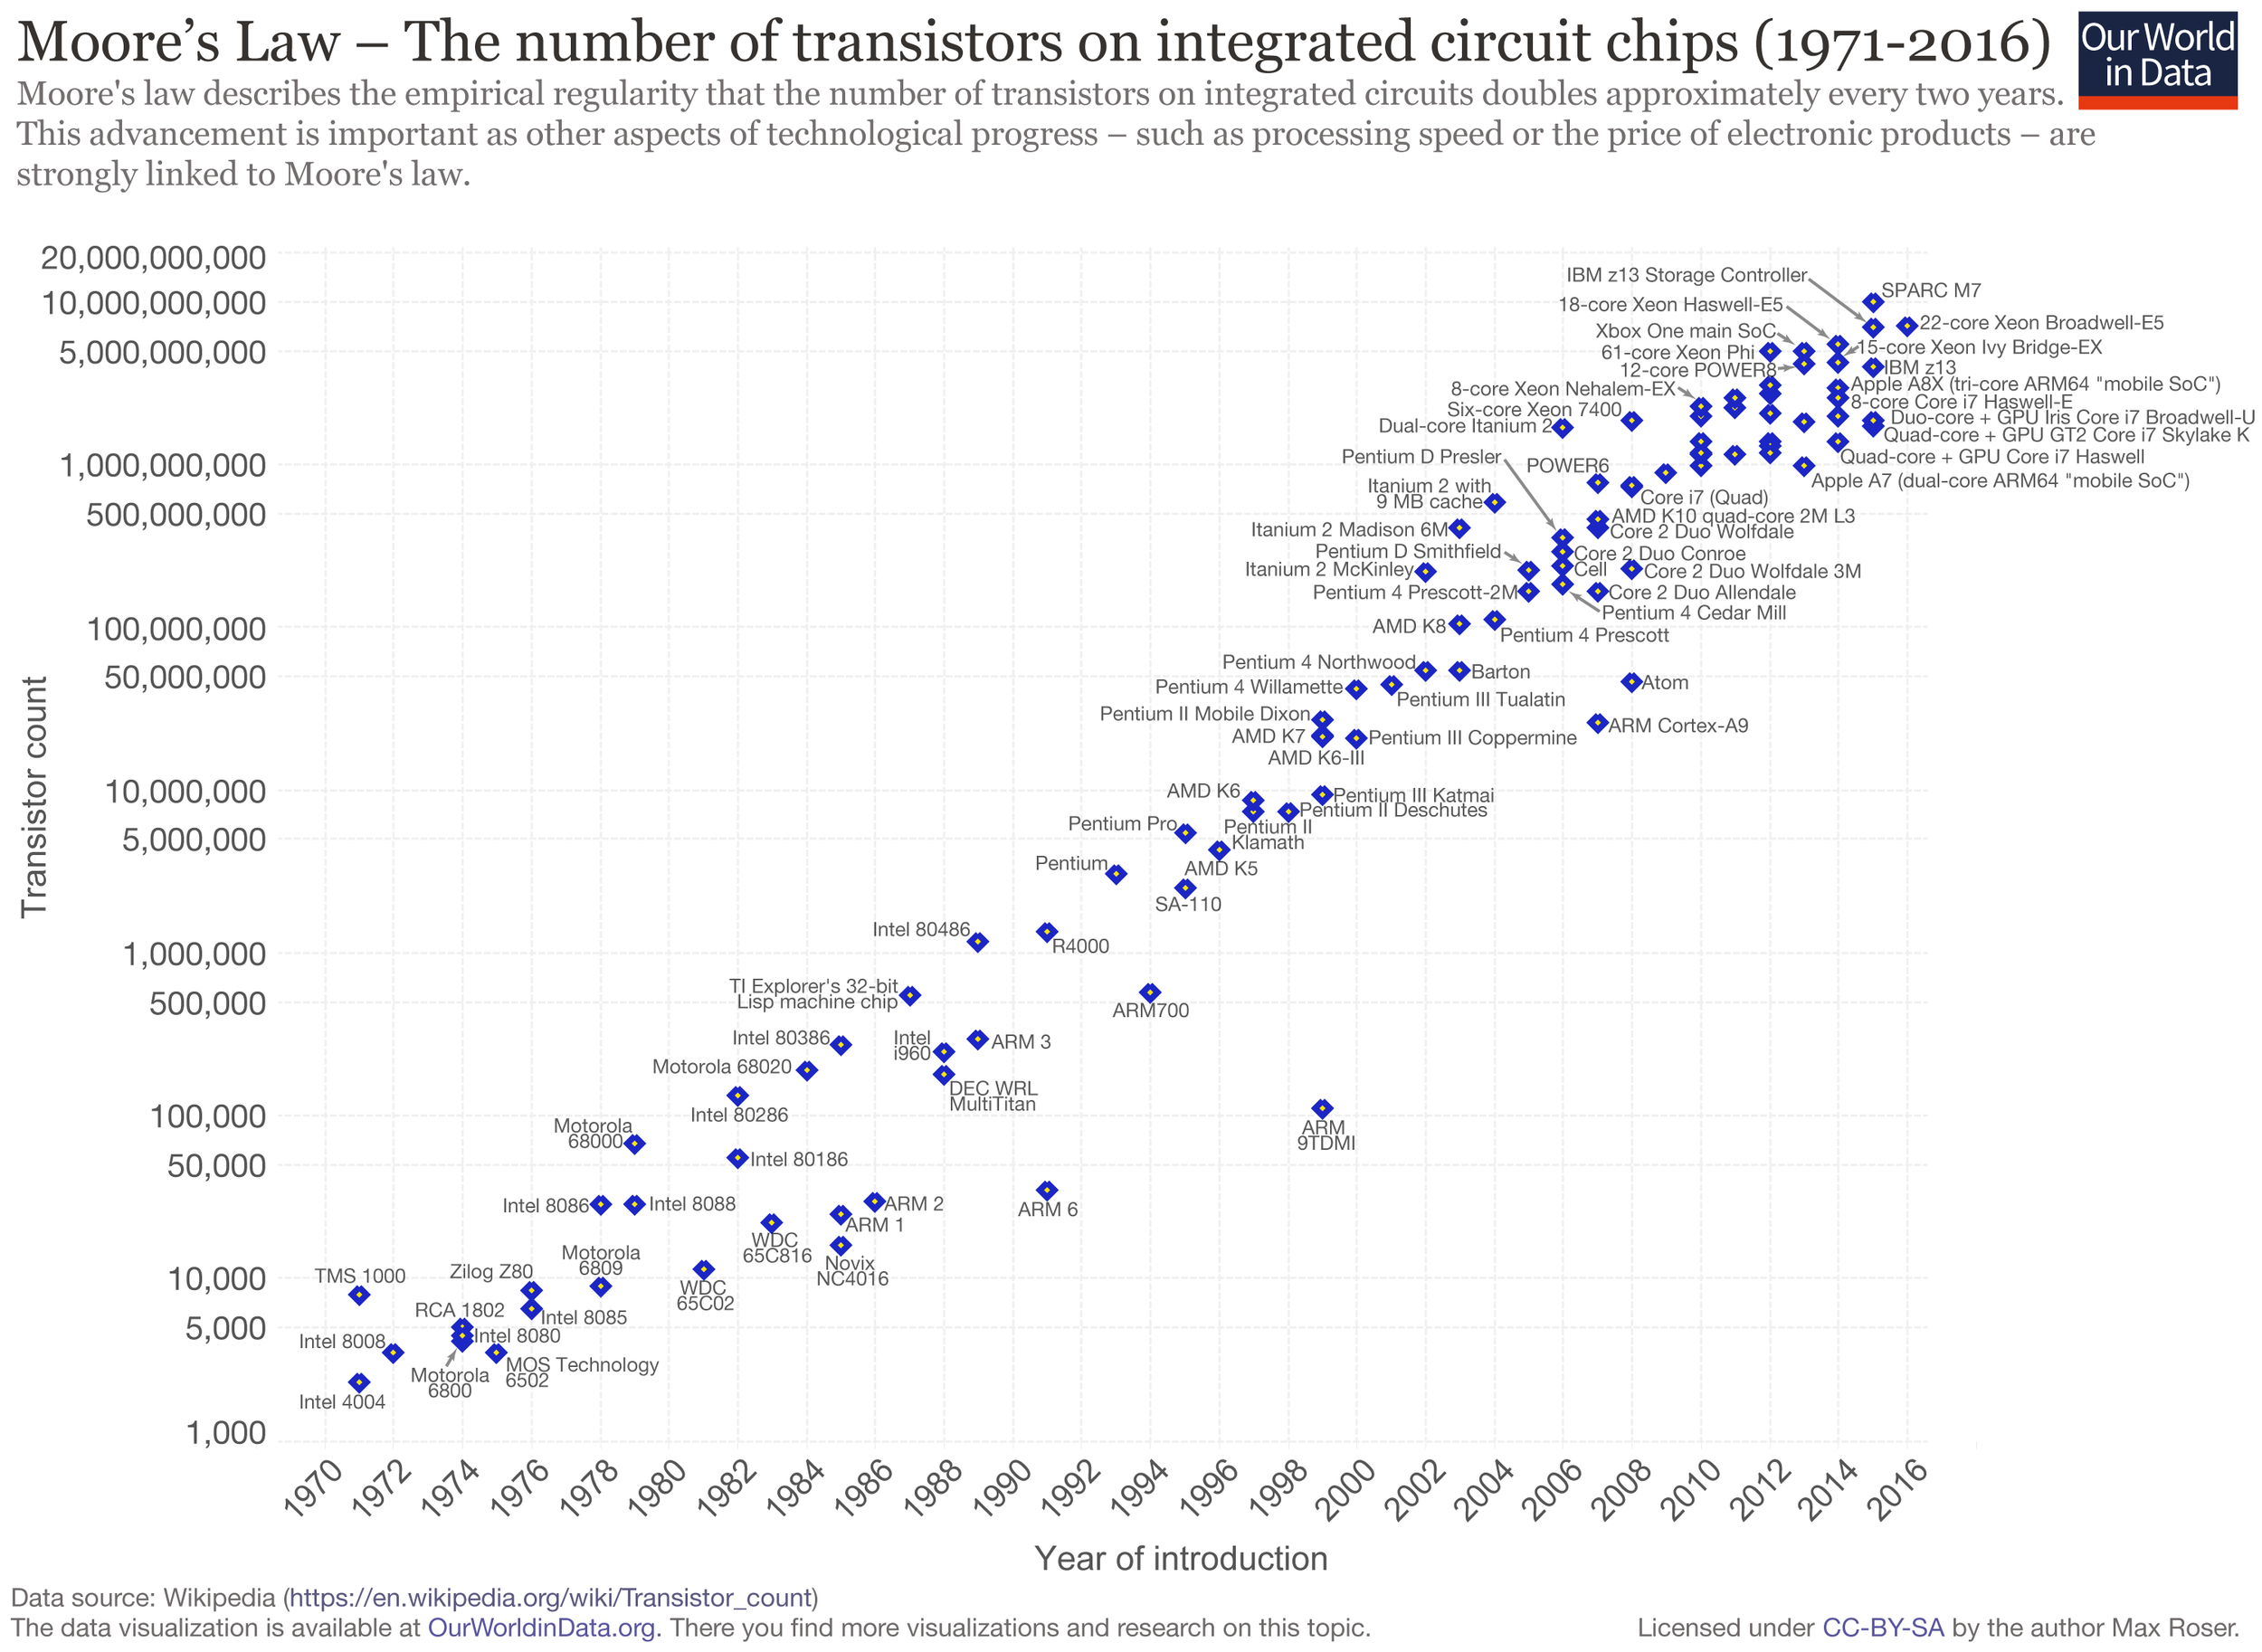 A plot of CPU  transistor counts  against dates of introduction.    Source URL:      https://commons.wikimedia.org/wiki/File:Moore%27s_Law_Transistor_Count_1971-2016.png